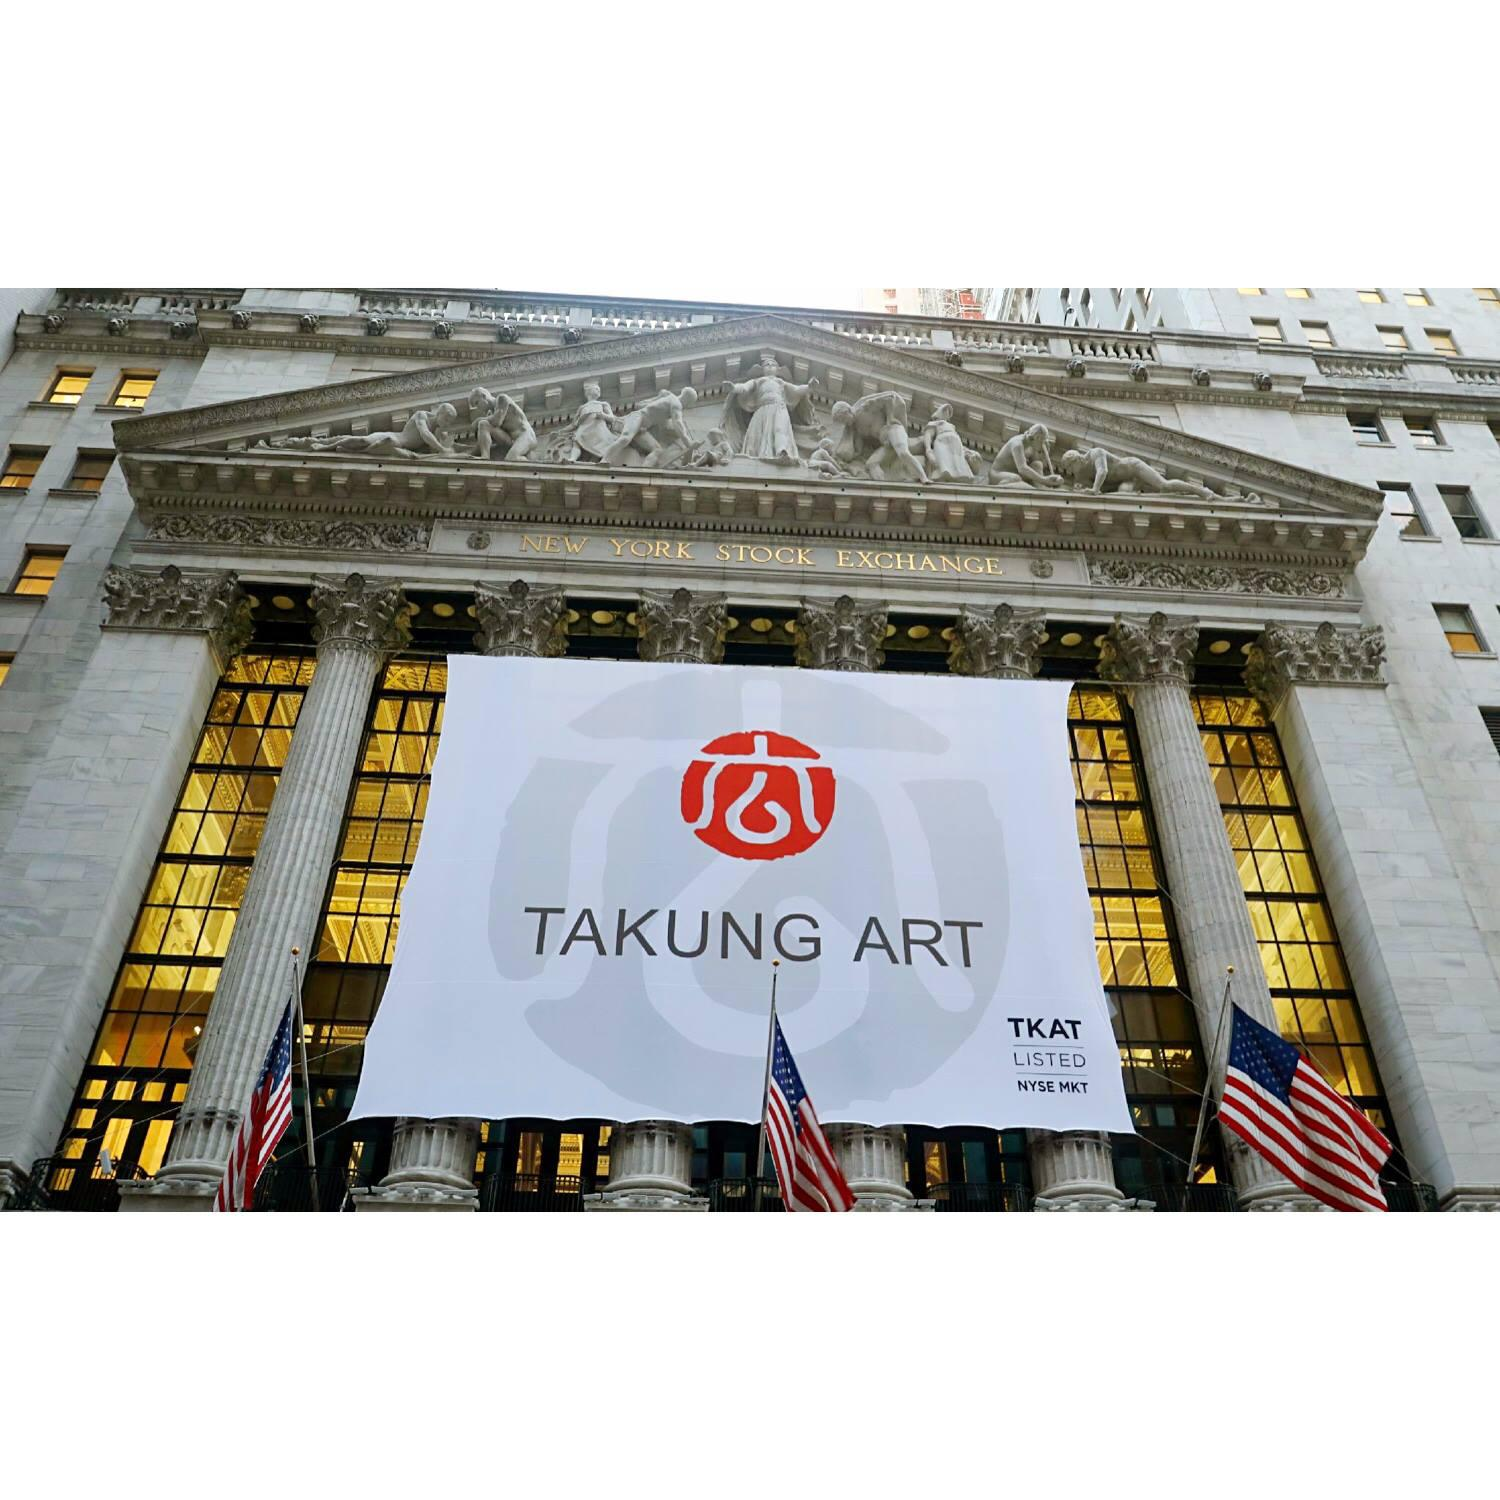 Takung Art on NYSE